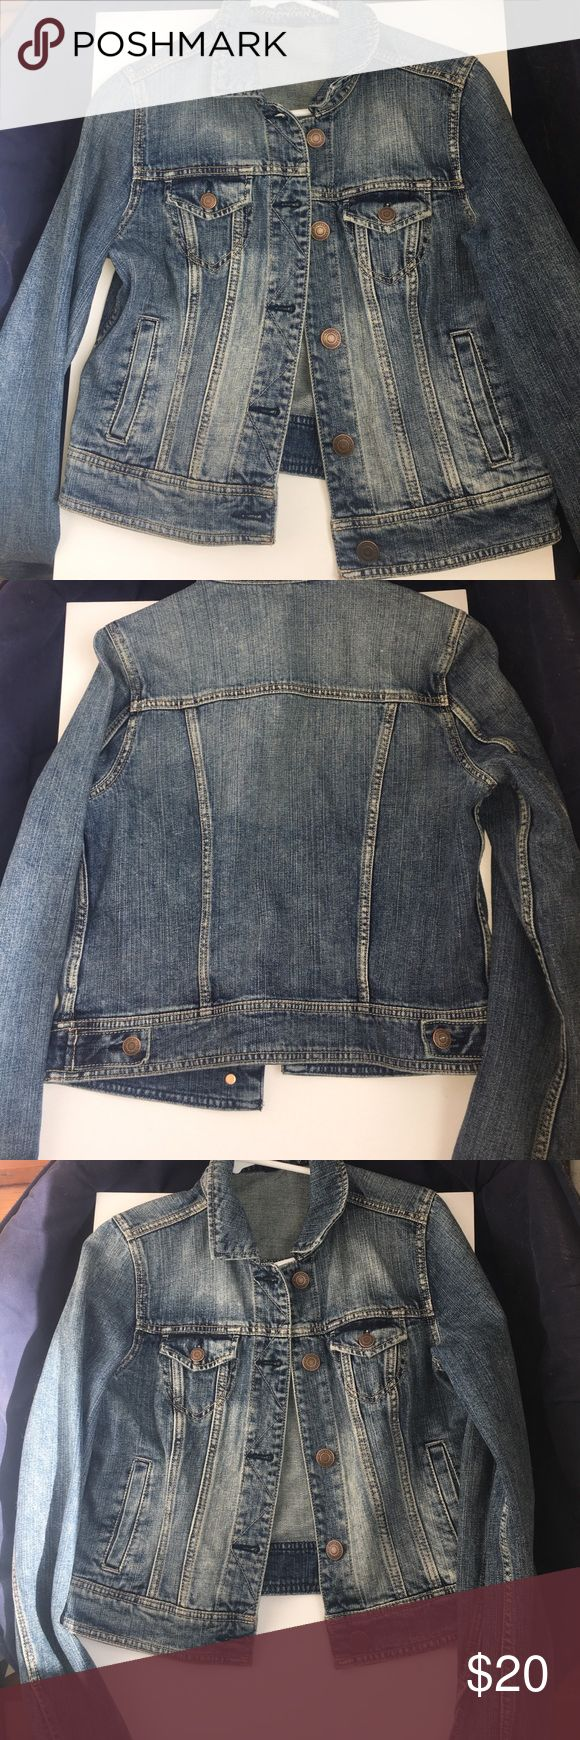 American Eagle Outfitters Denim Jacket American Eagle Outfitters medium wash Denim Jacket. Never worn, 100% Cotton, super soft, no damage, like new! Size is a Medium. American Eagle Outfitters Jackets & Coats Jean Jackets